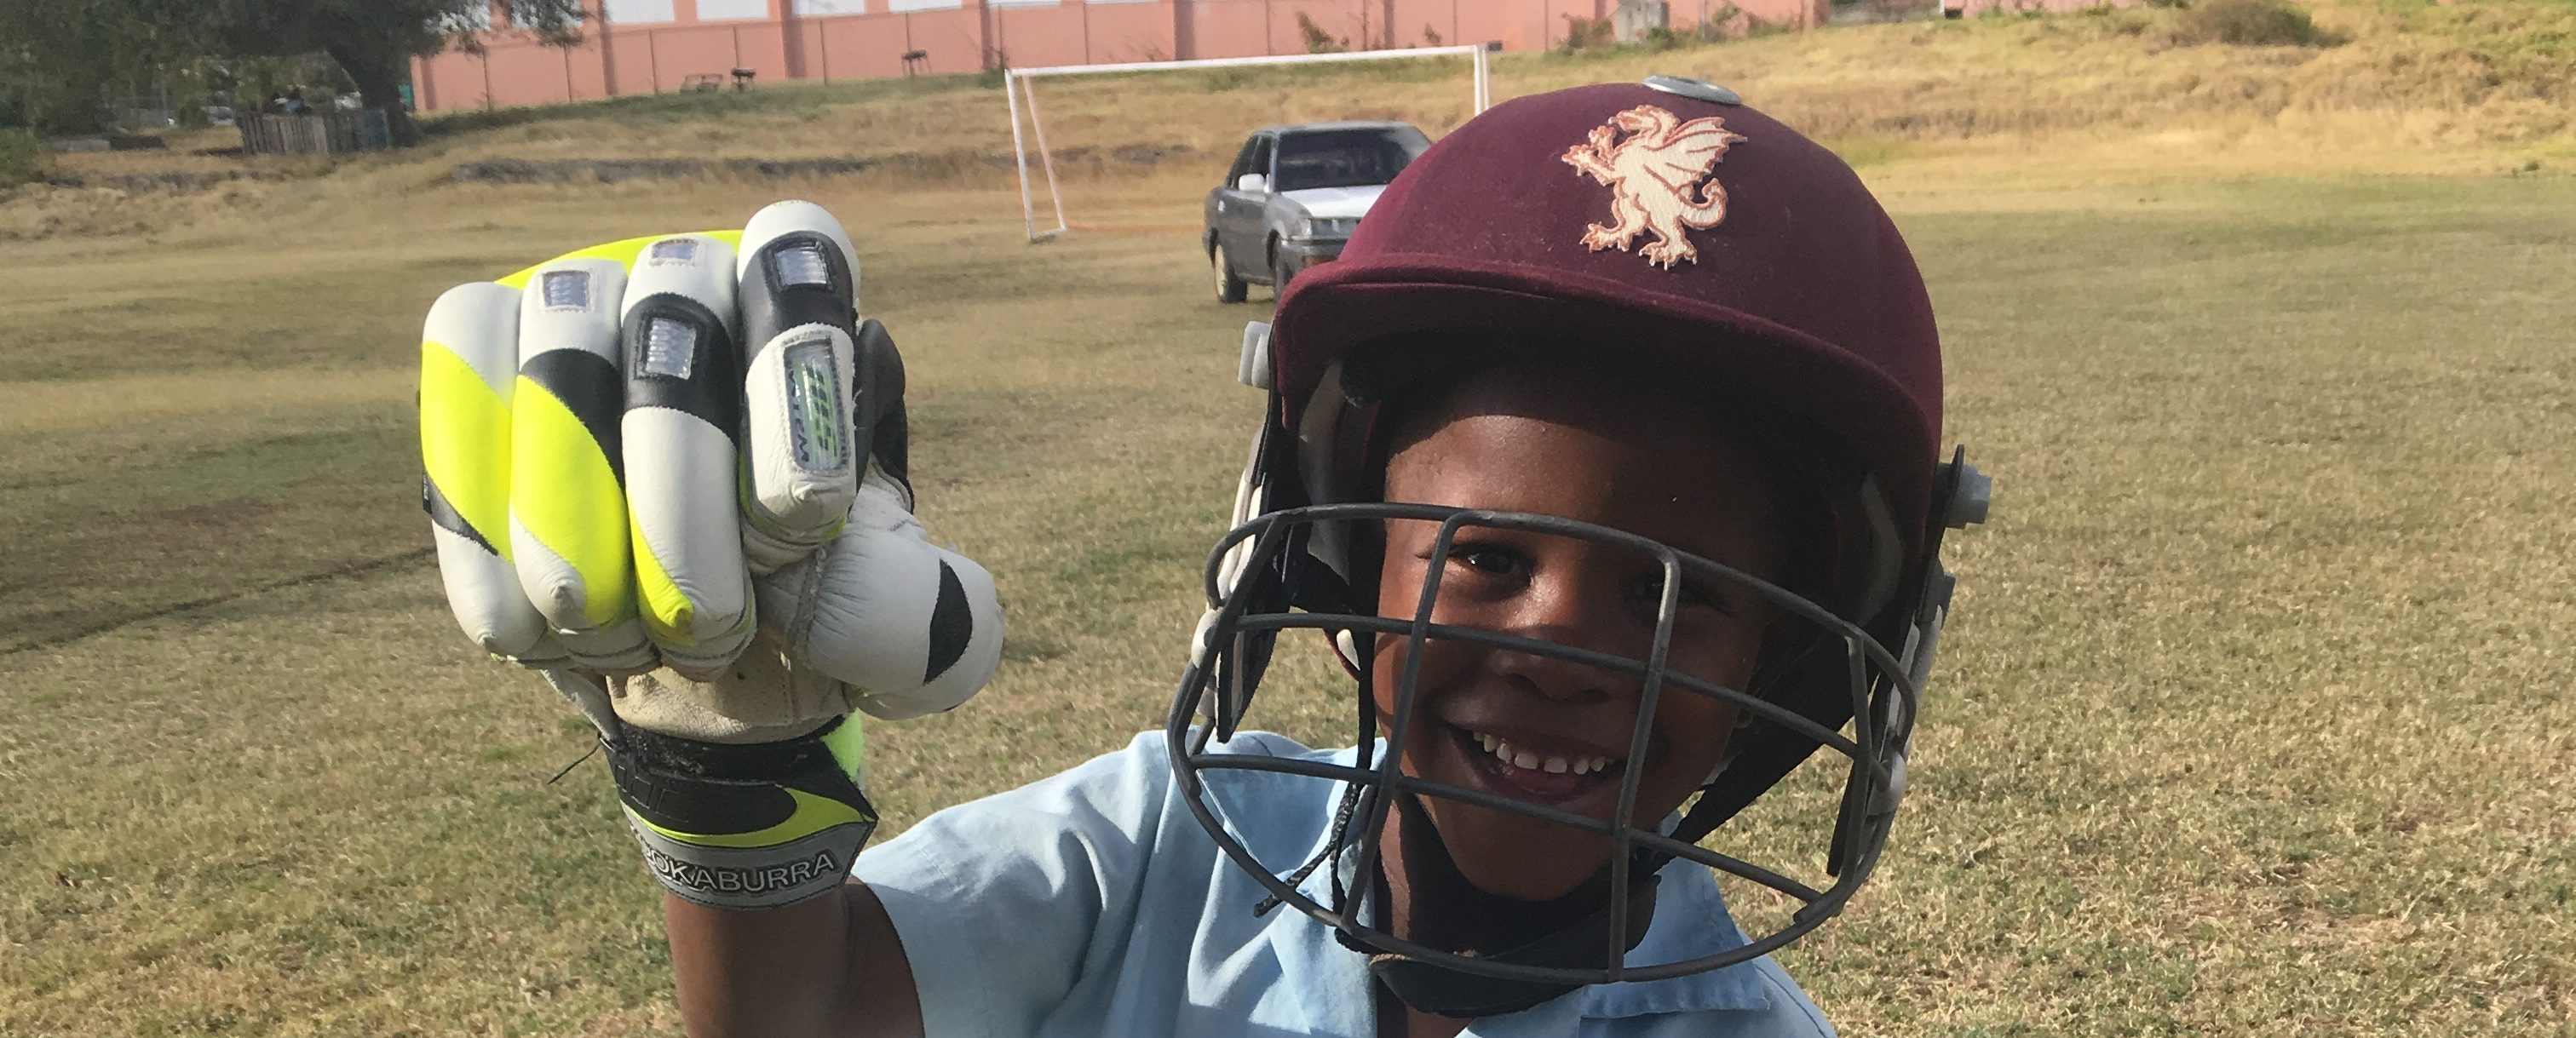 Urlings CC Youngster Tries His Equipment On For The First Time